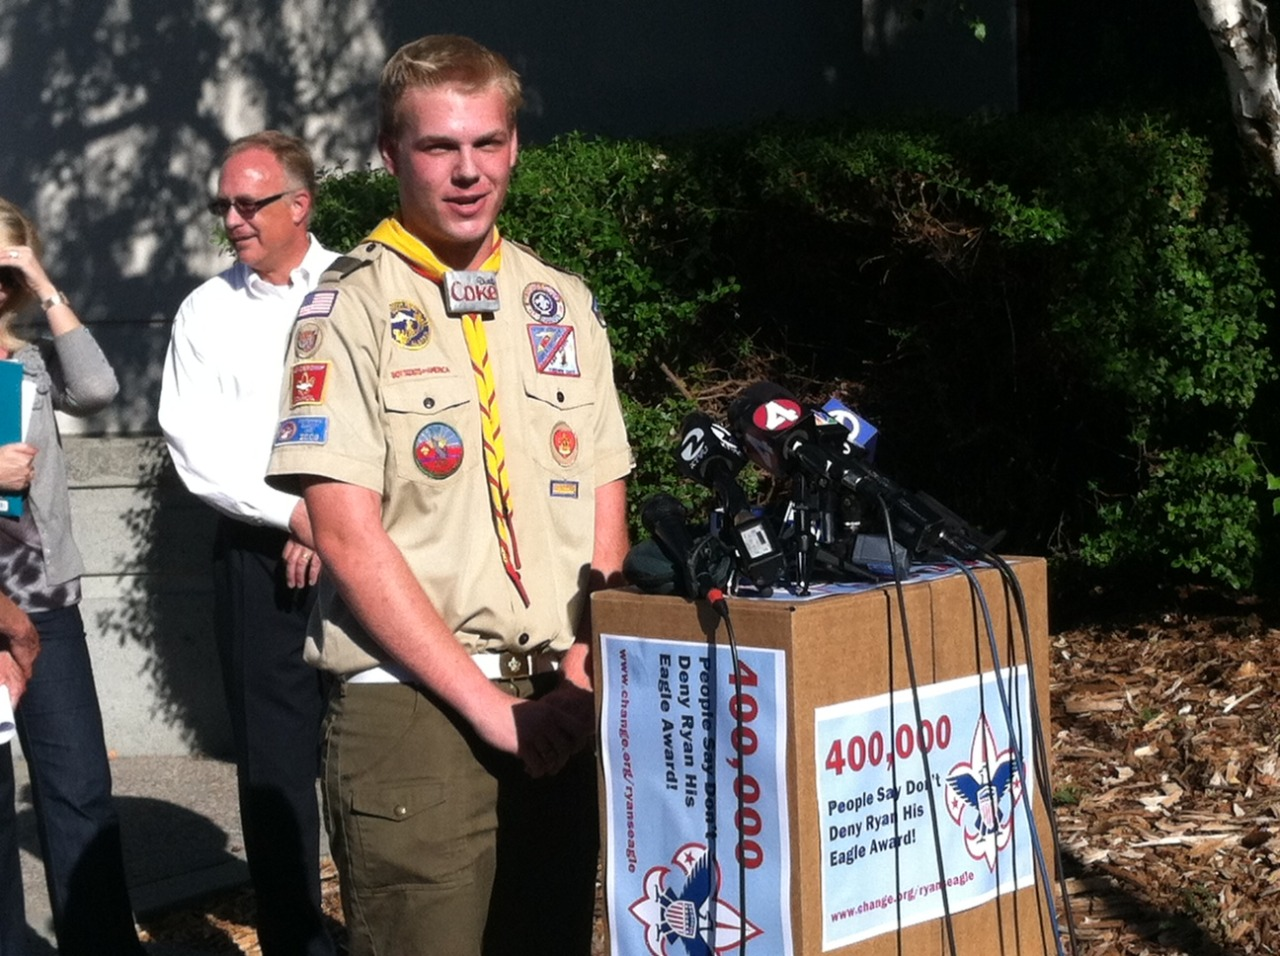 BIG NEWS!The Mount Diablo-Silverado Boy Scout Council in California approved gay scout Ryan Andresen's Eagle badge application, despite the Boy Scouts of America's national ban on gay scouts and leaders.